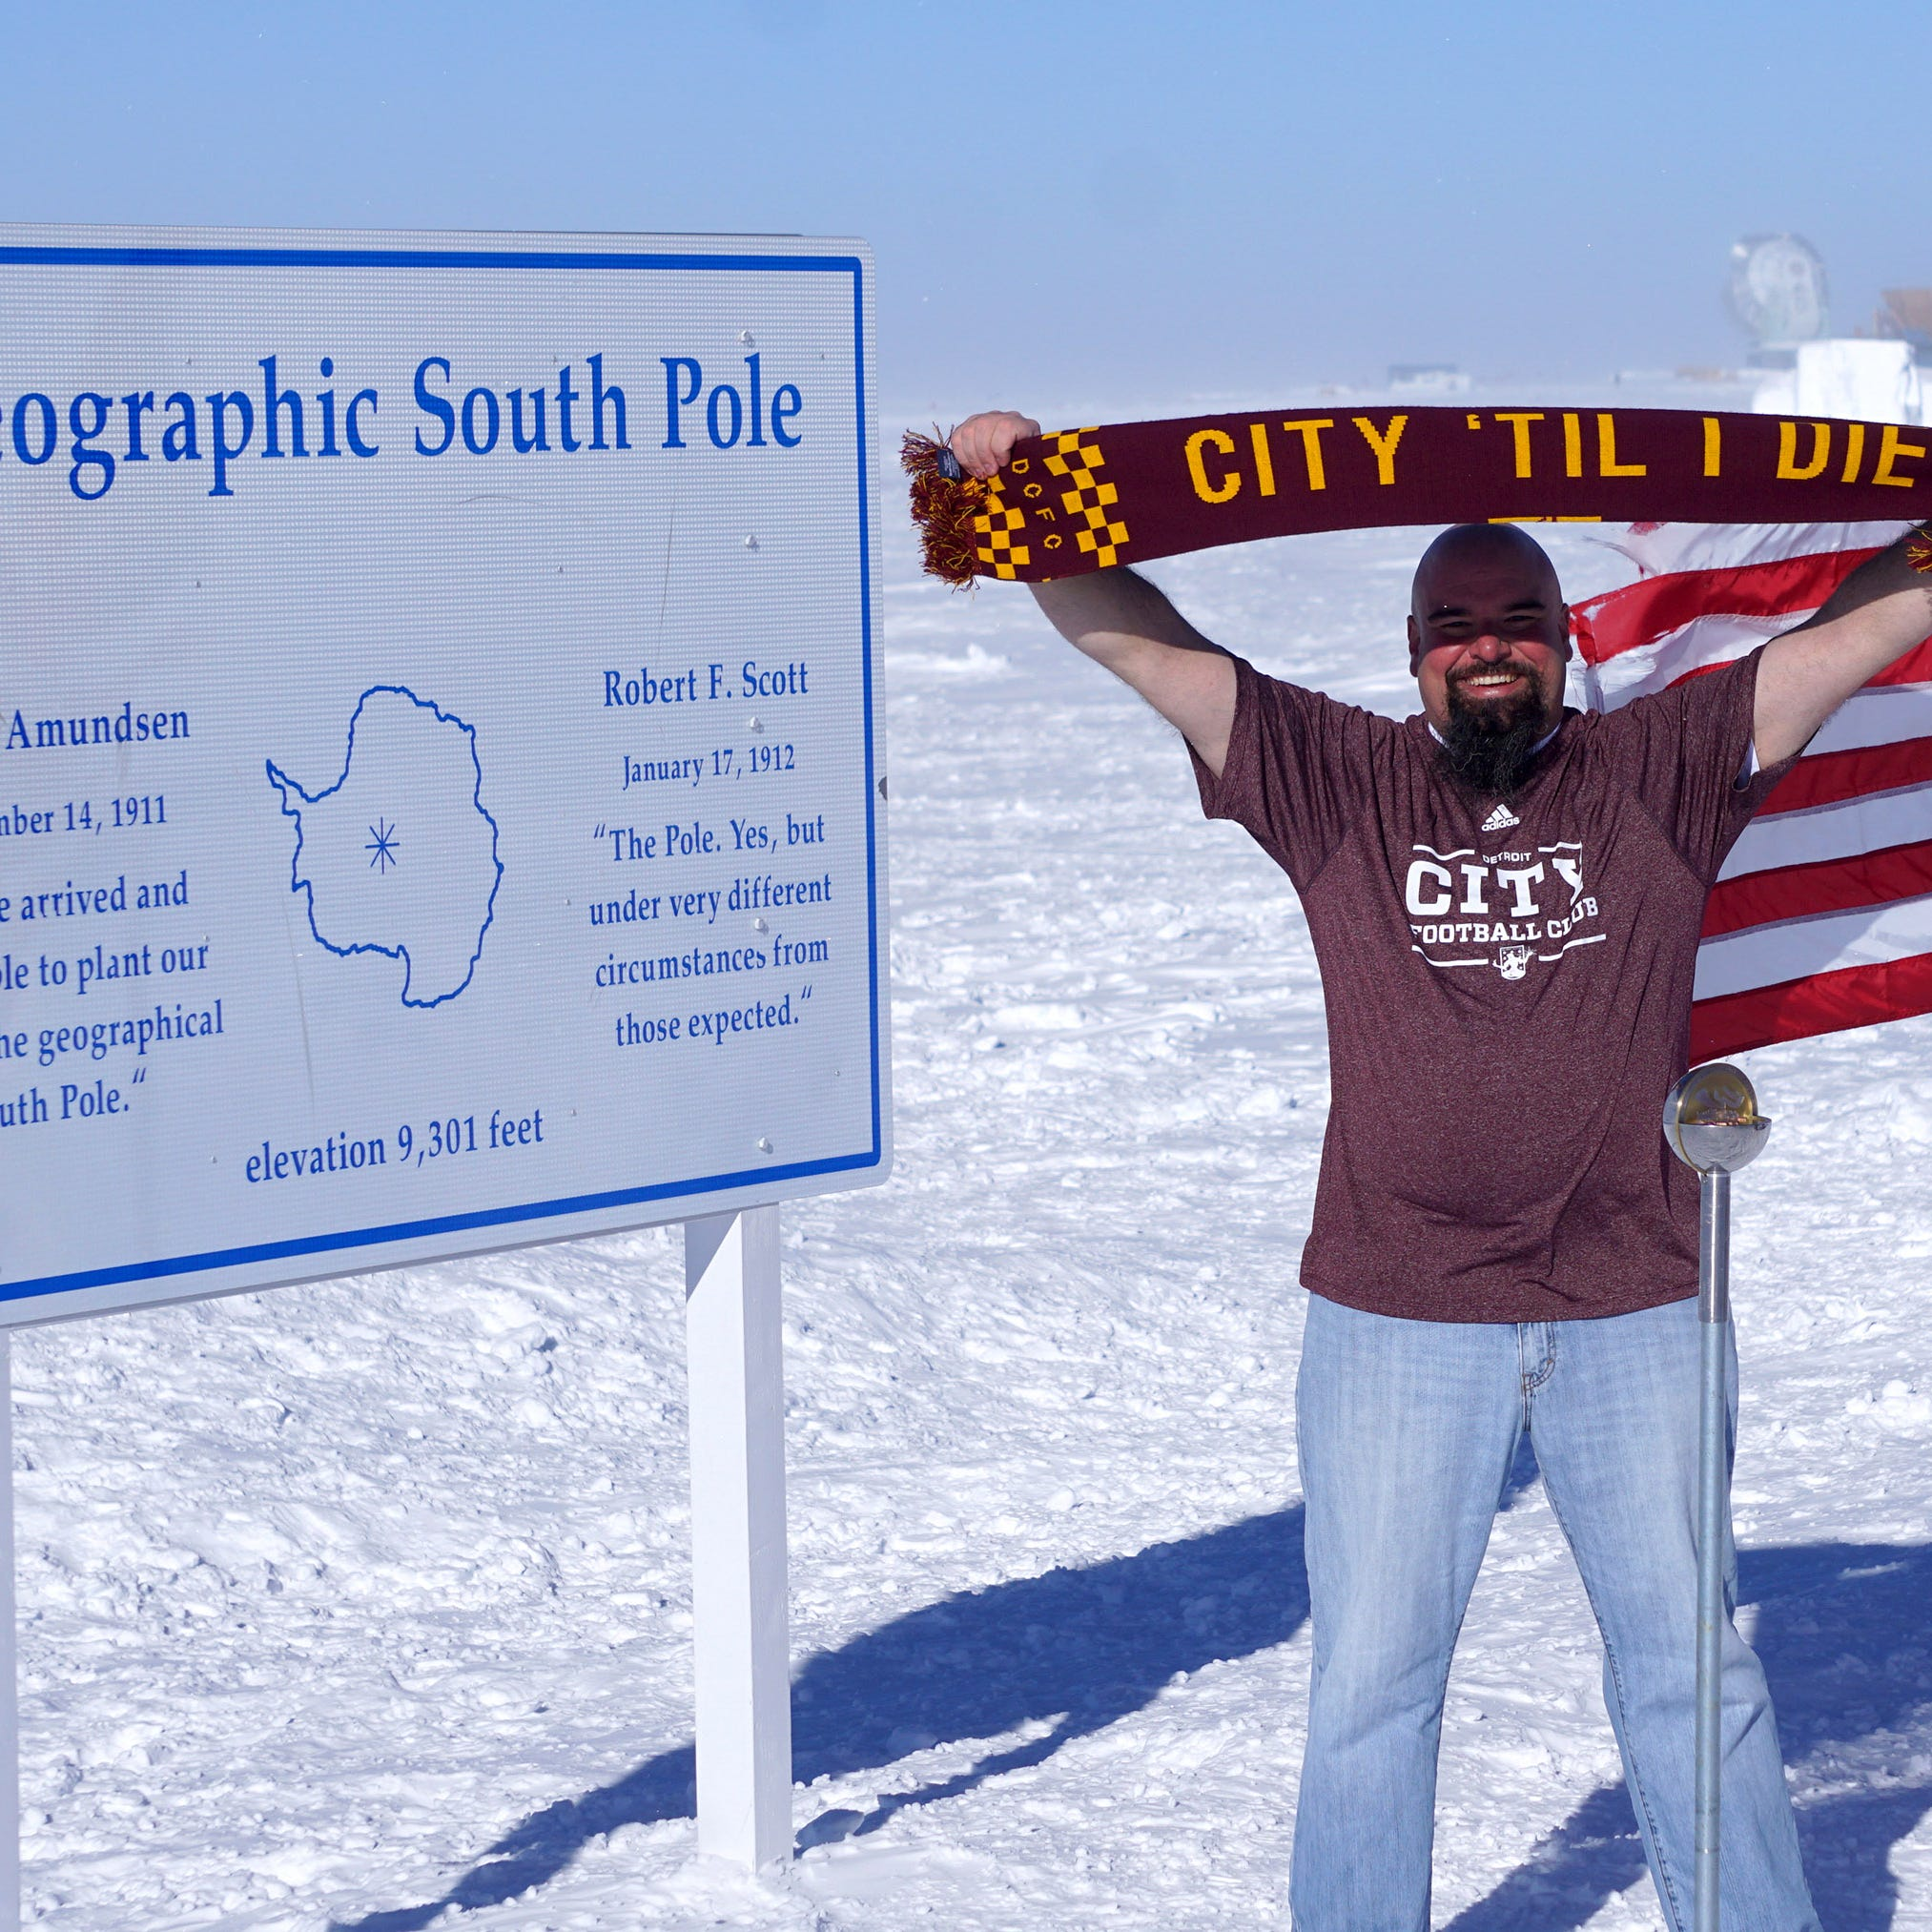 Travel with the D to the South Pole